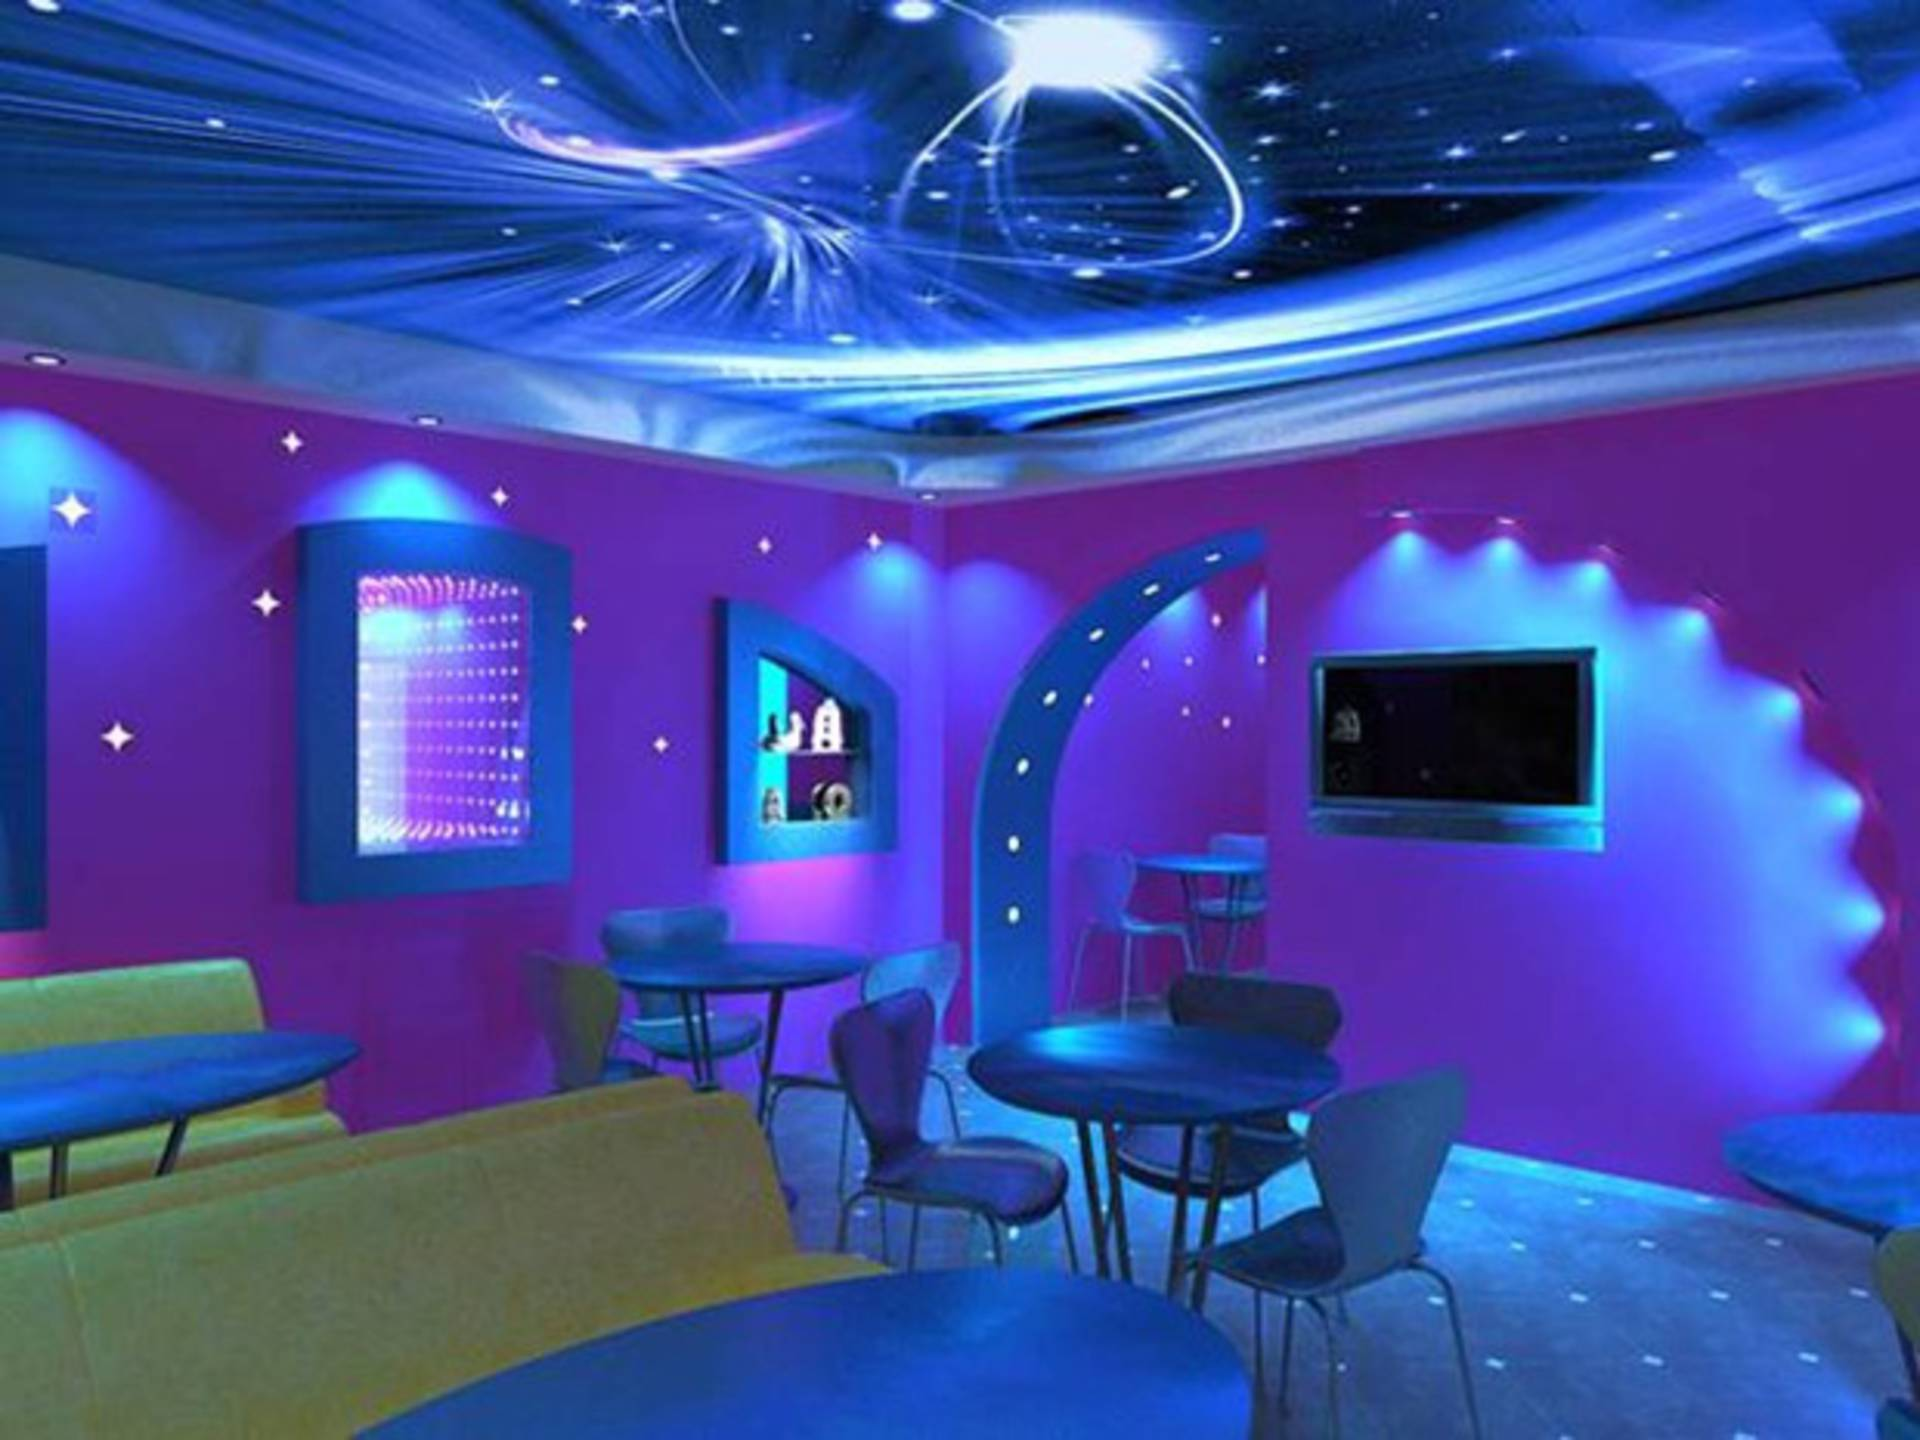 Cosmic Elements in Interior Design - Home Reviews